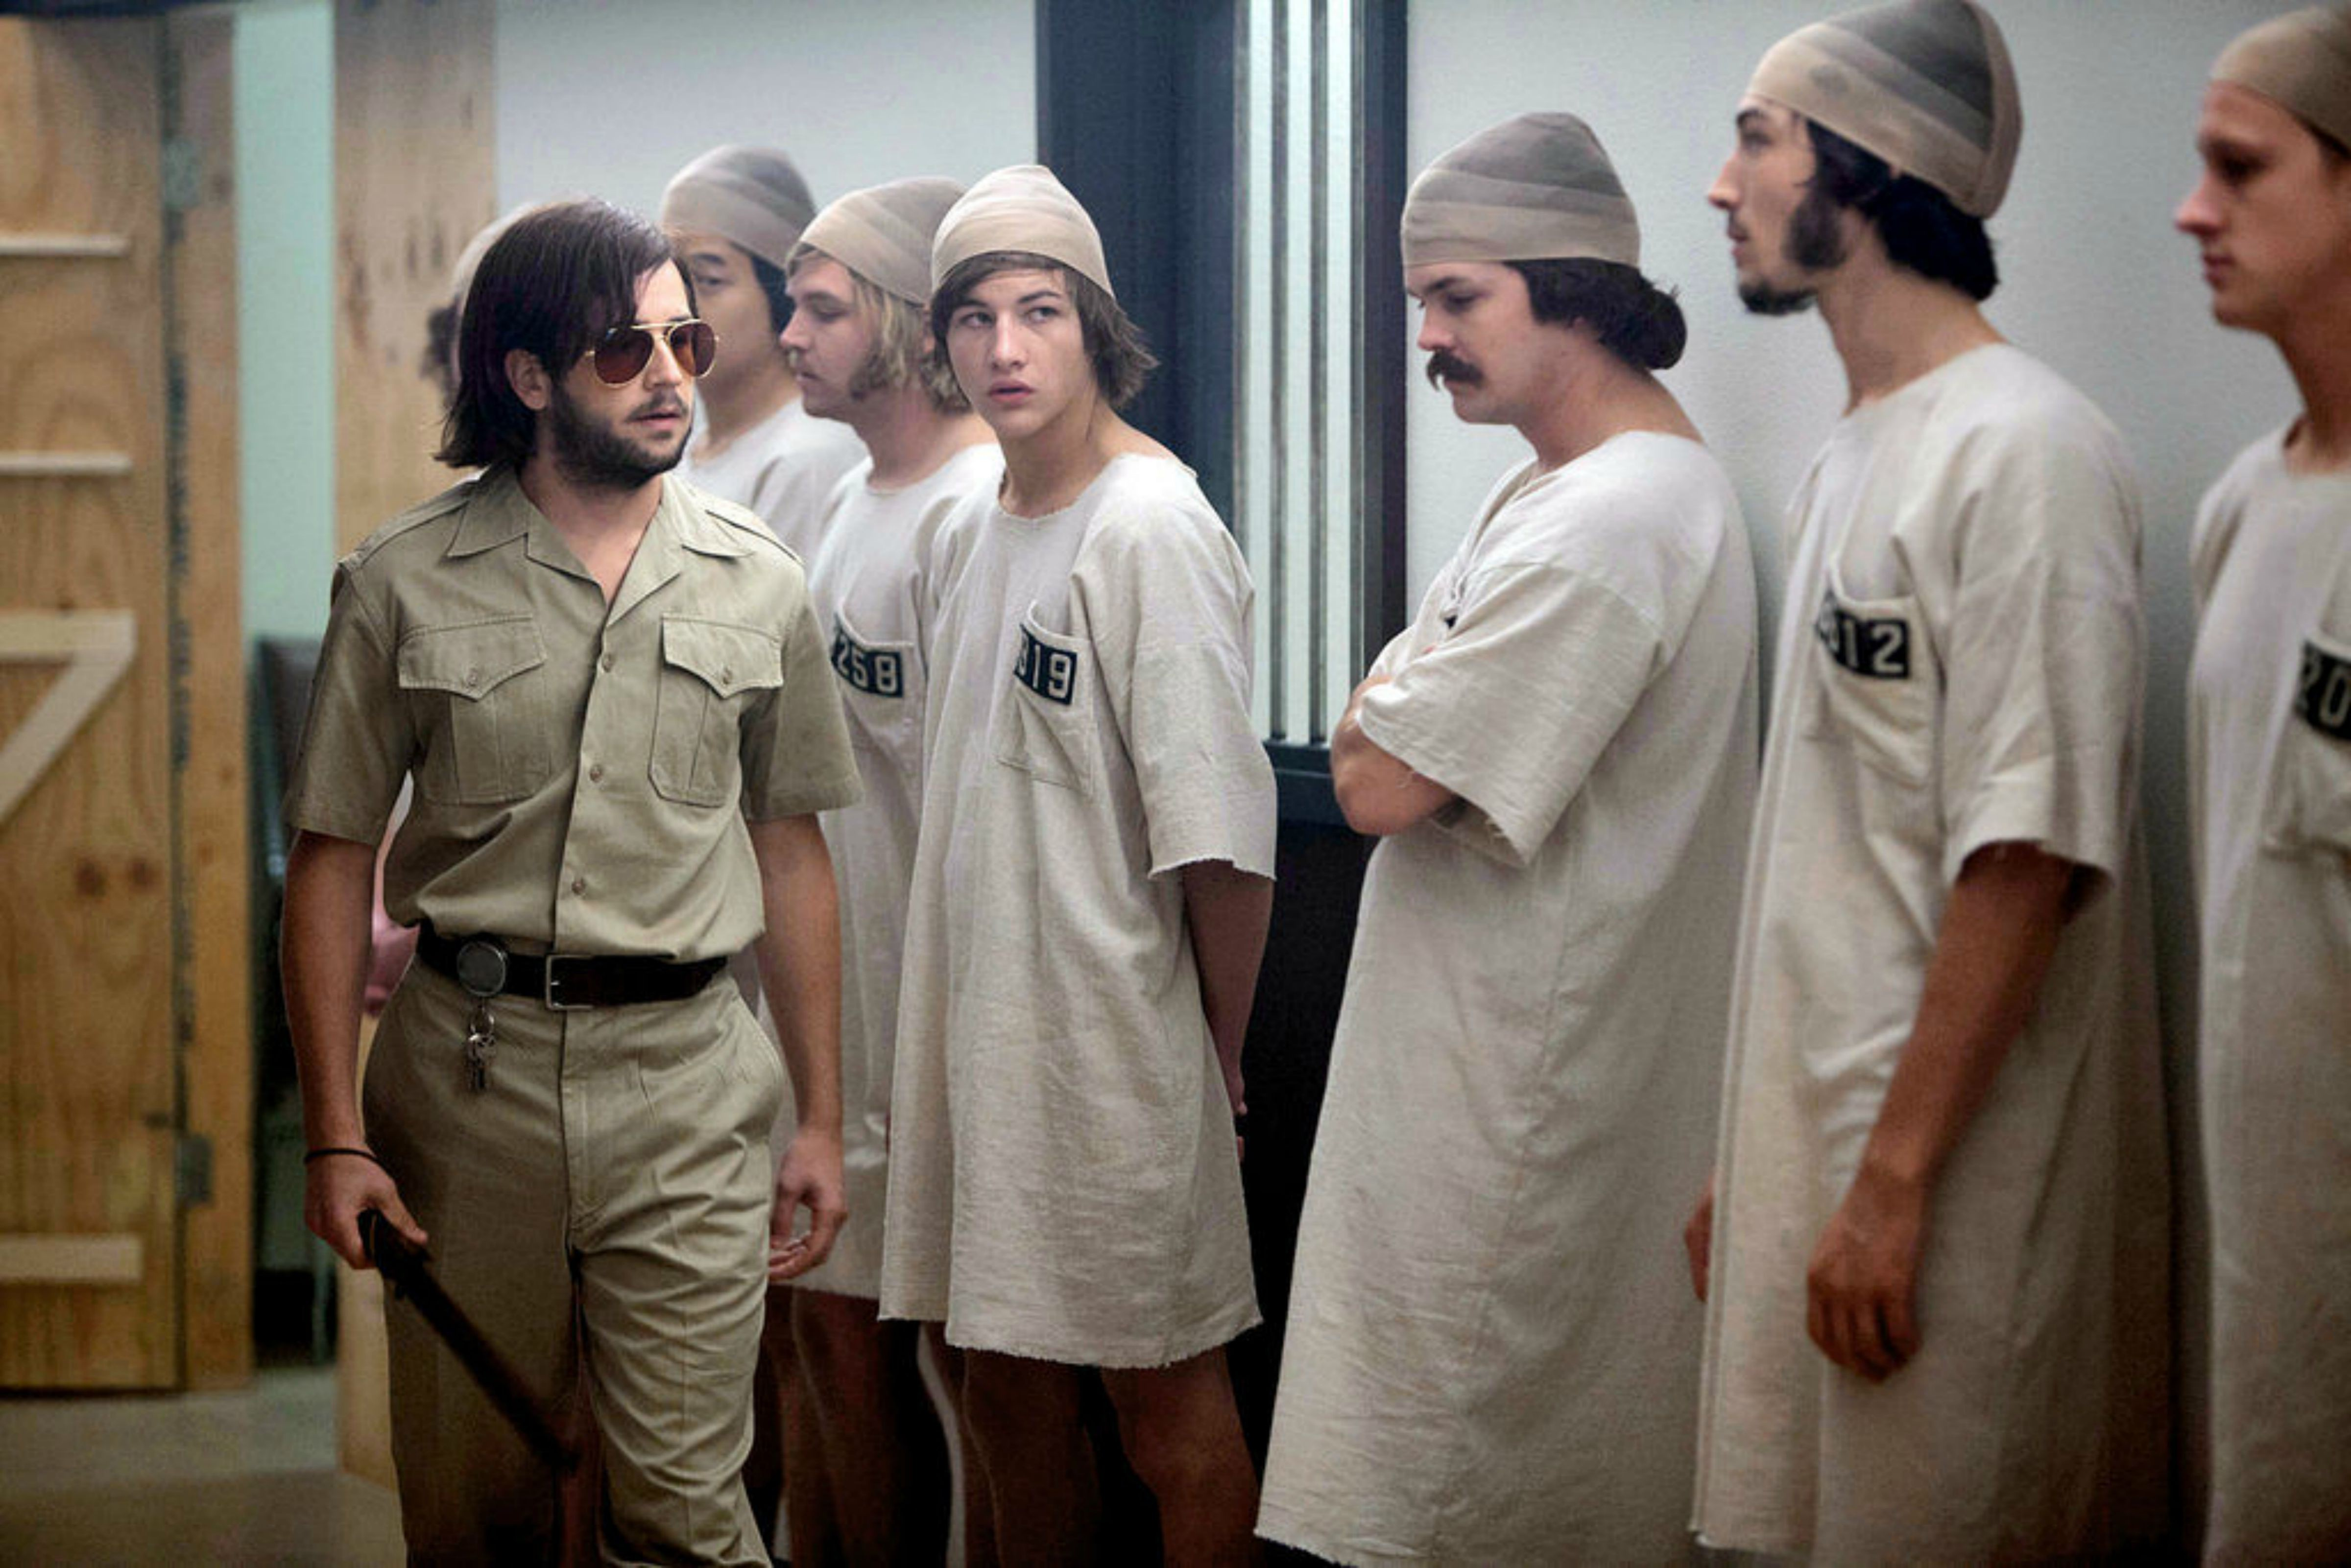 The Stanford Prison Experiment review